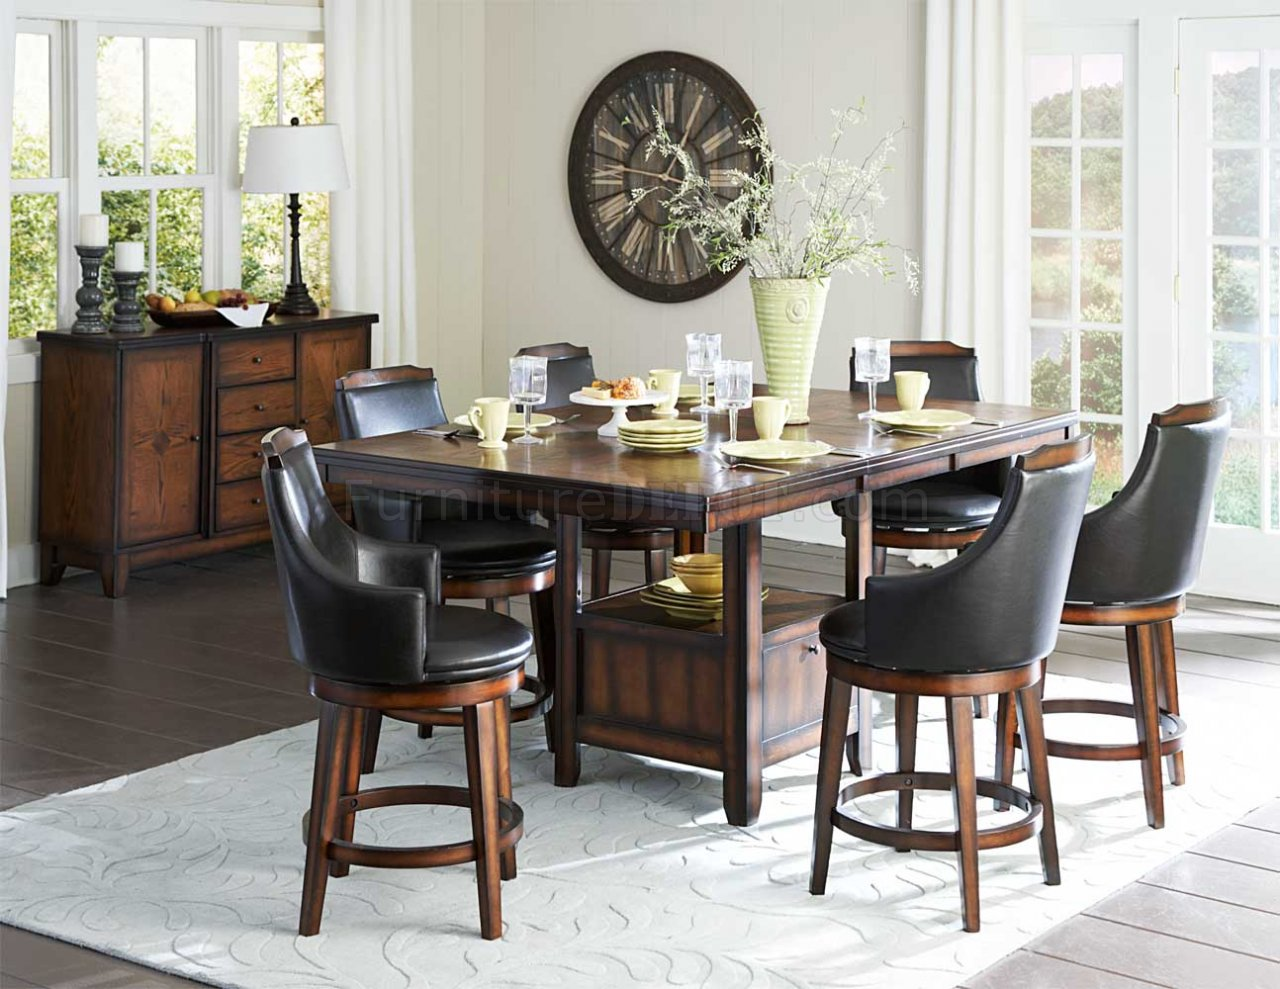 Bayshore 5447 36XL Counter Height Dining Table By Homelegance